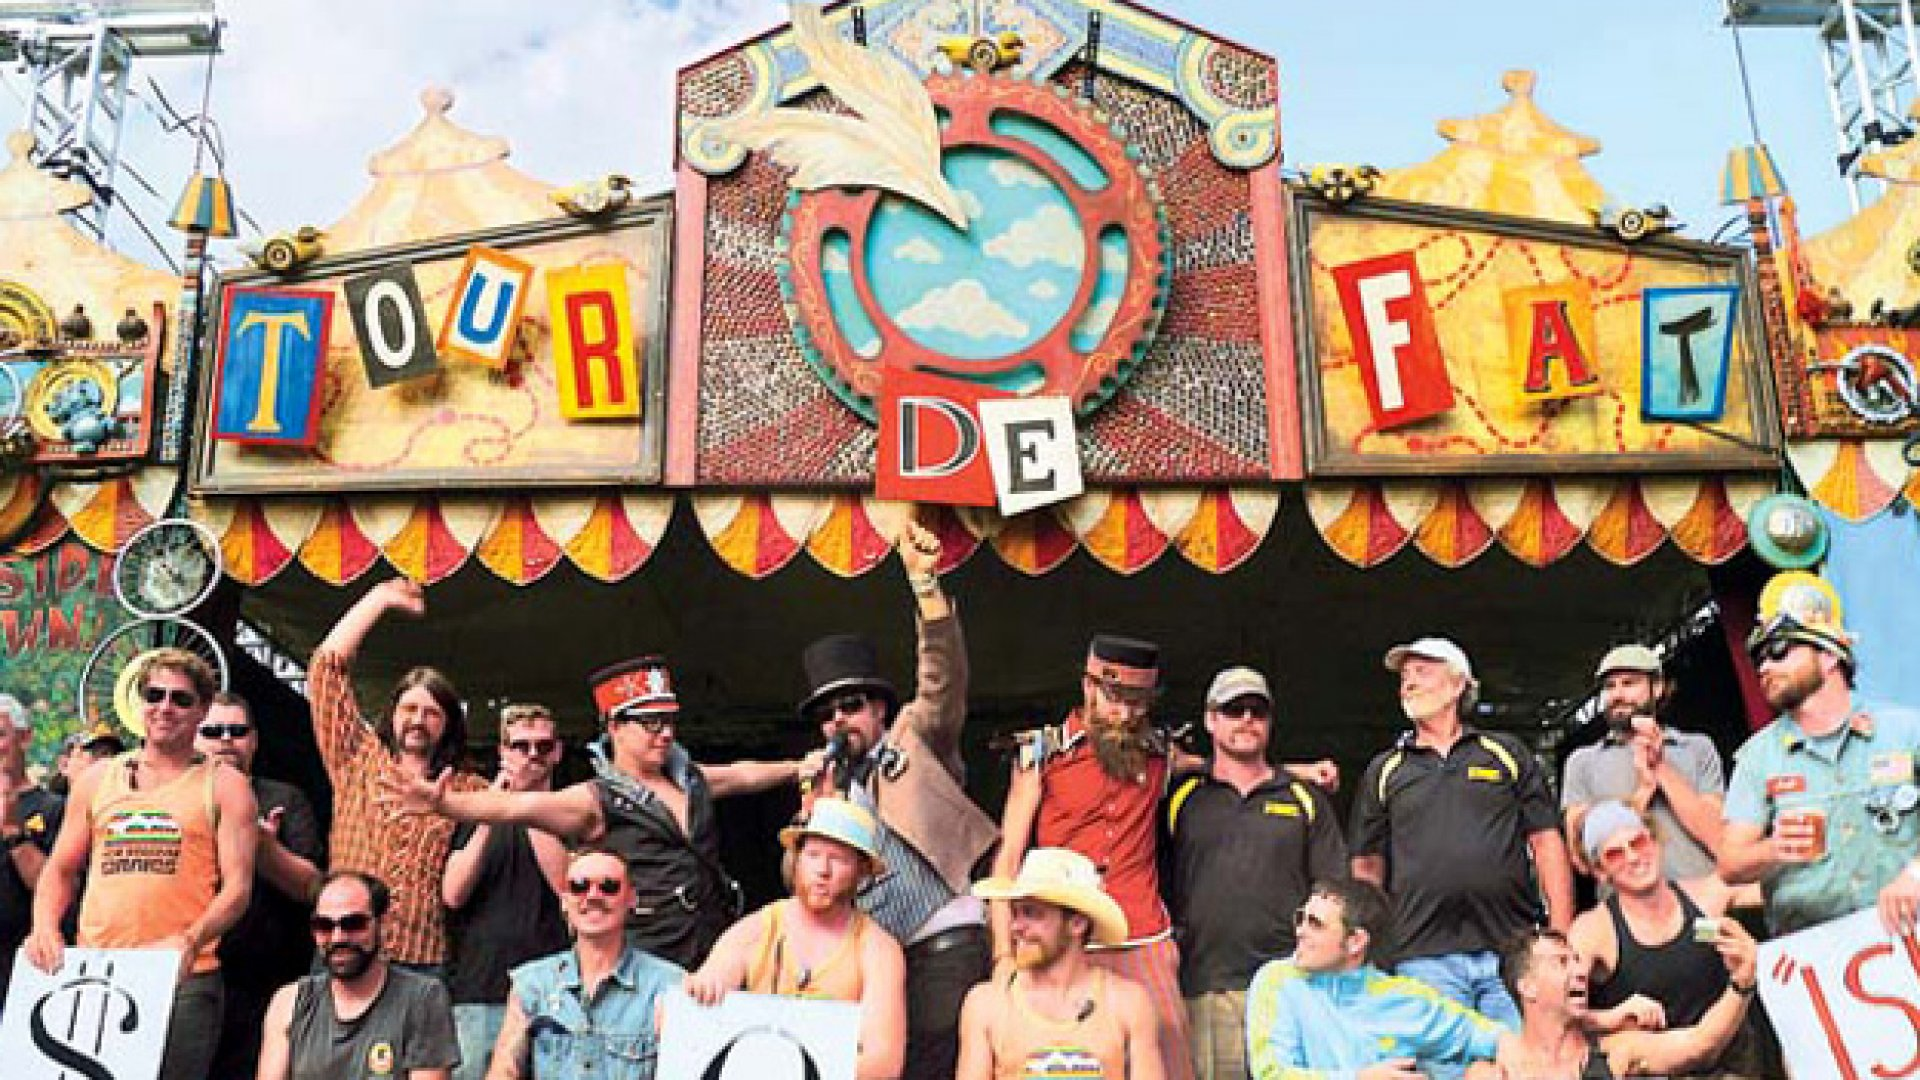 <b>JUST ANOTHER DAY</b> New Belgium's employees raised $500,000 through its 2012 Tour de Fat, a bicycling carnival that traveled through 15 cities to raise money for local nonprofits.